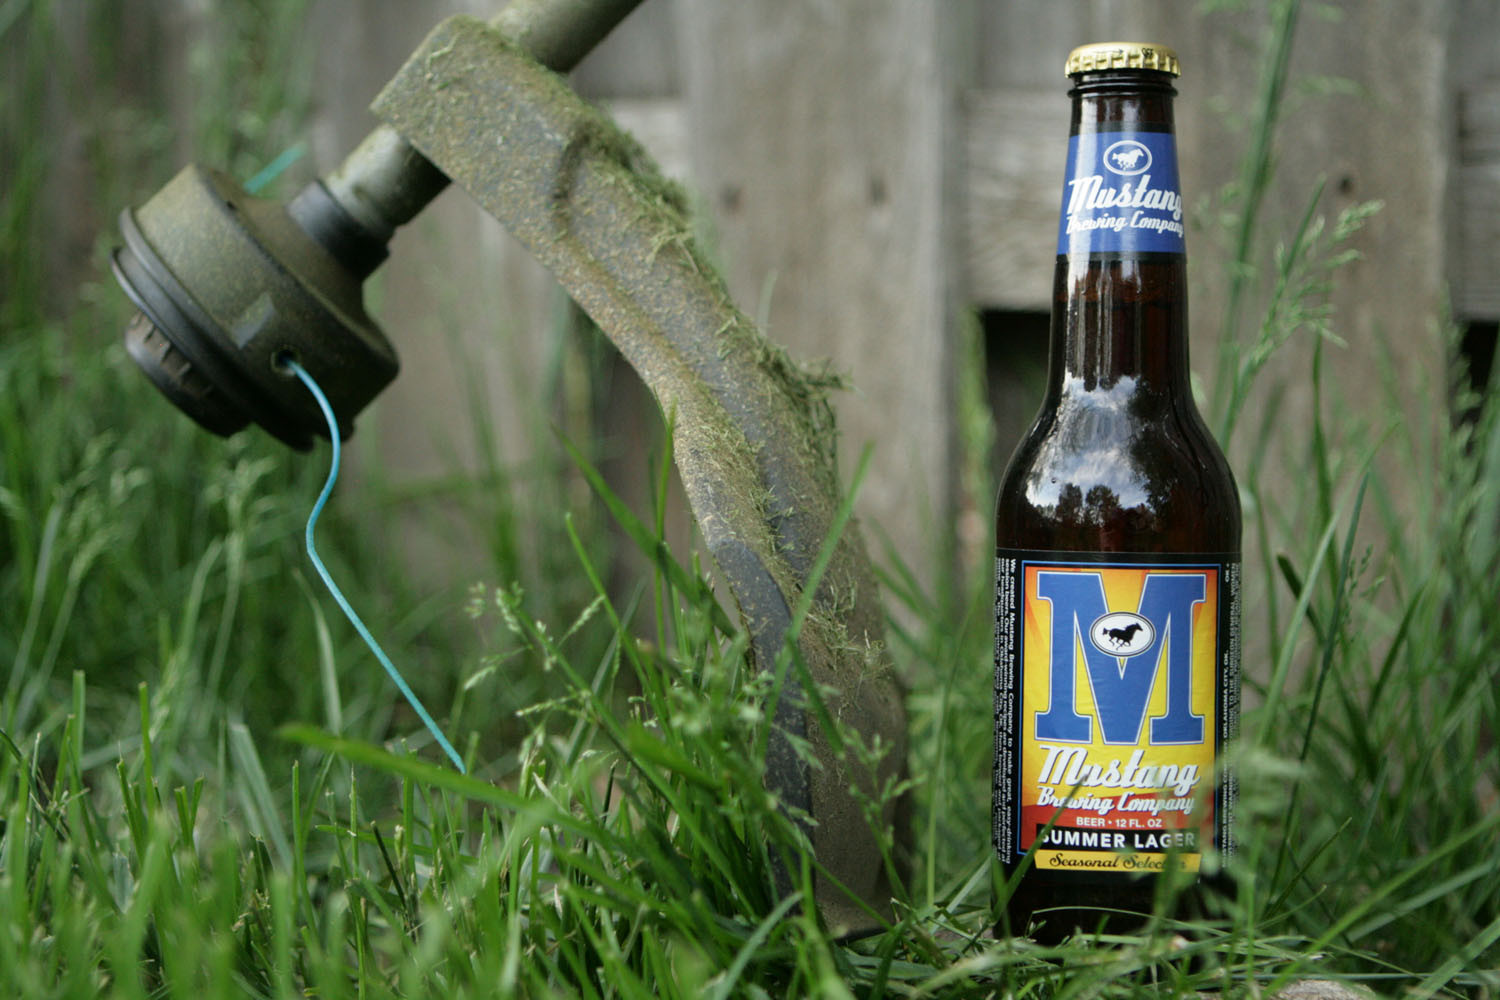 Mustang summer lager is a perfect beer style for the summer.